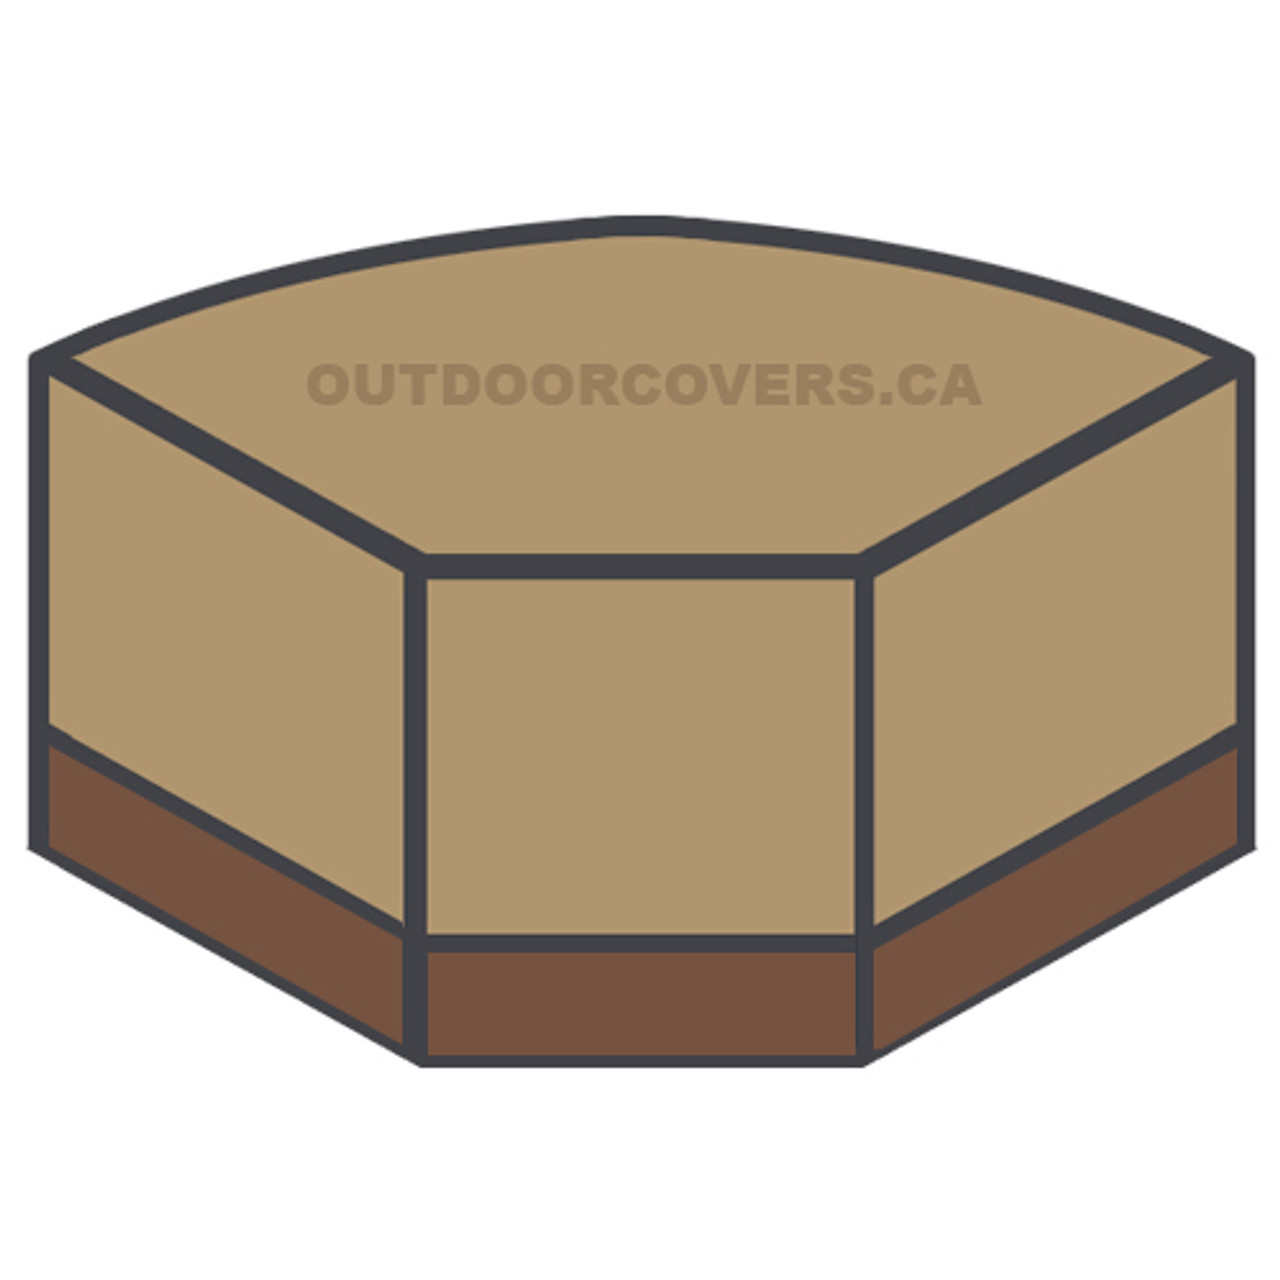 Savanna curved sectional corner cover shape